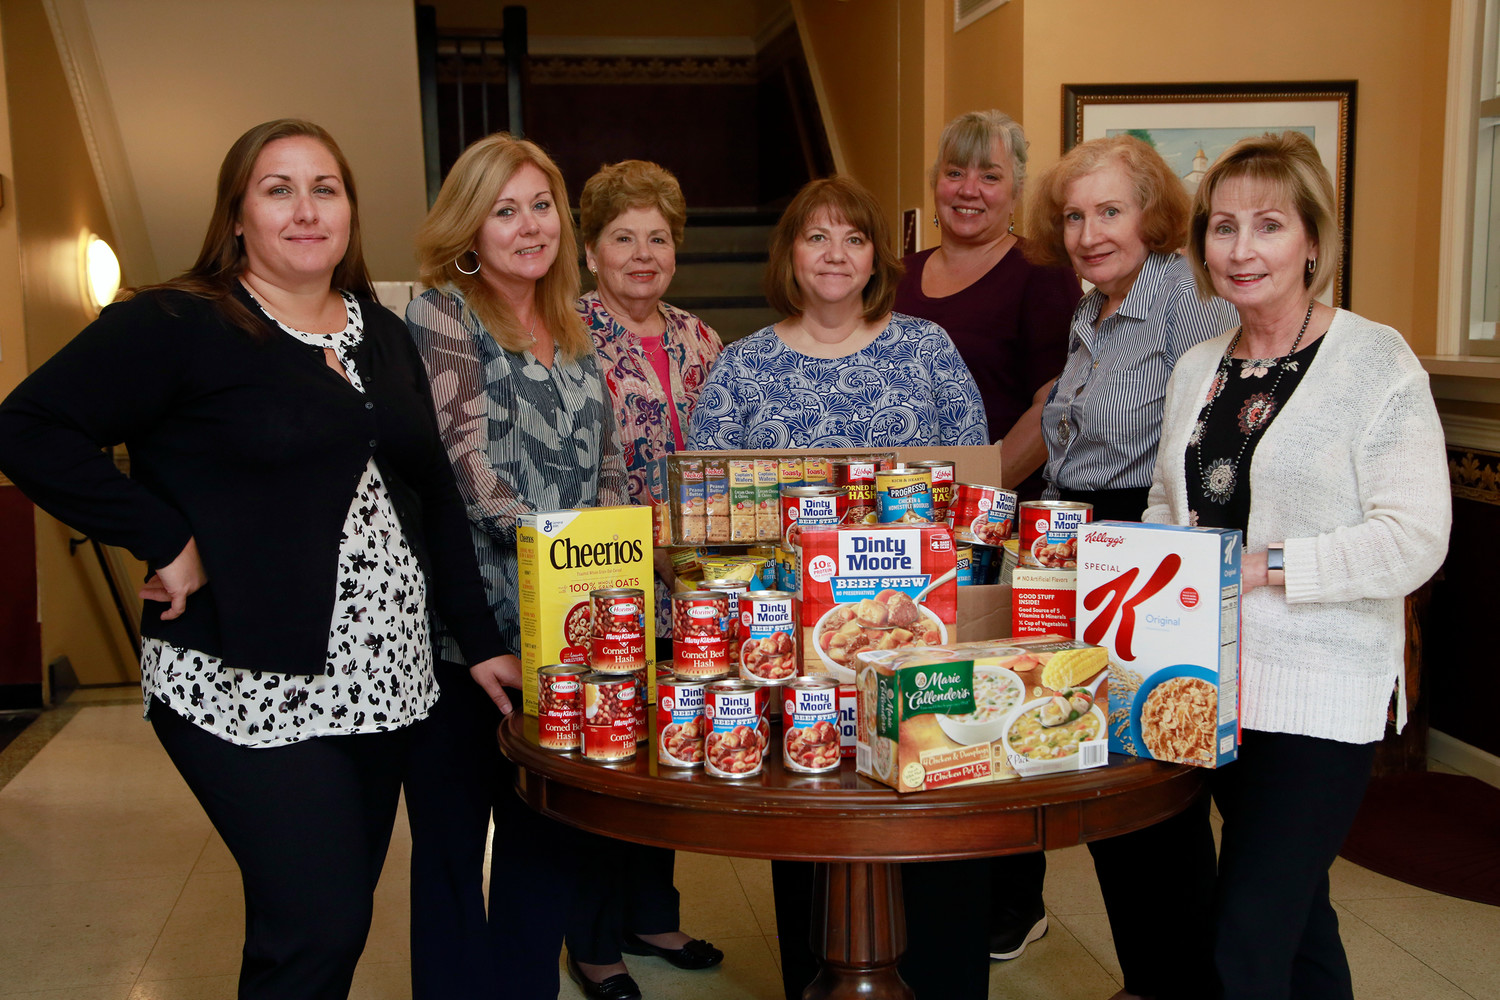 Malverne Village Hall employees Mary Kate Schnaars, far left, Lisa Lagomarsine, Rosalie Pampillonia, Jill Valle, Christine Addiego, Rose Miller and Terry Emmel helped collect food for The Bridge Church on Monday.